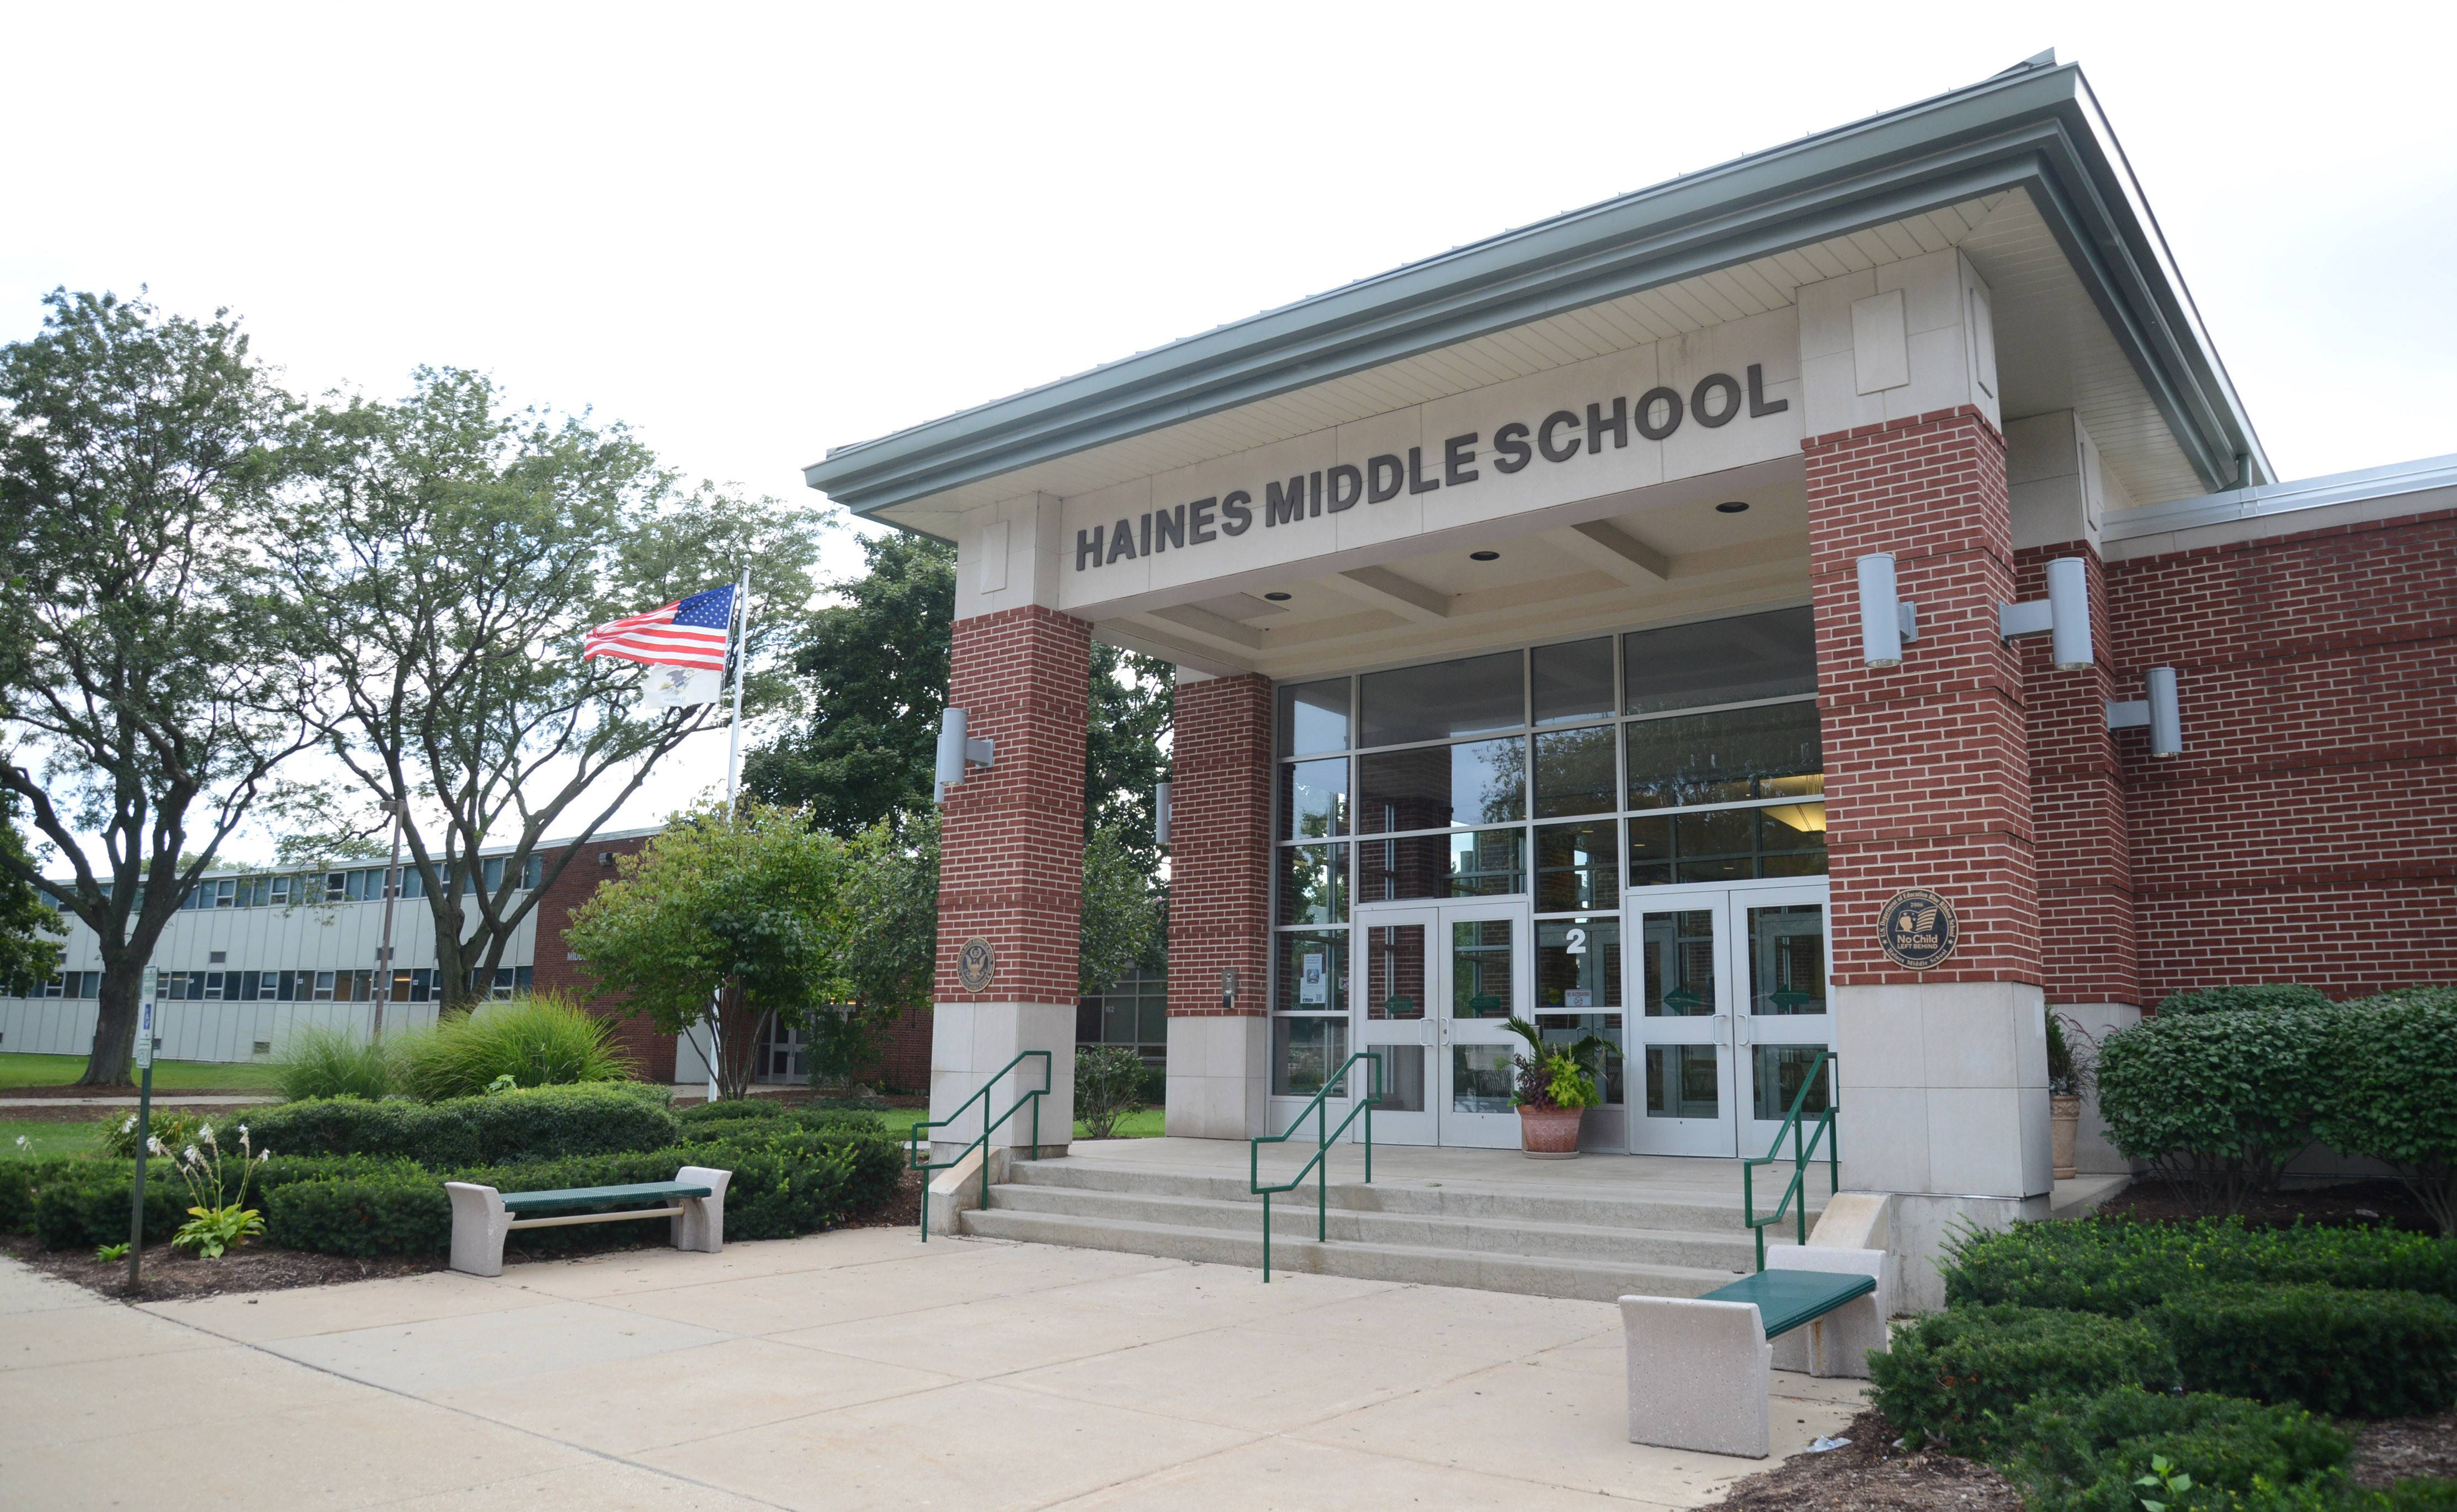 Haines Middle School in St. Charles will close in two years, and District 303 school board candidates differ on whether to keep it or sell the property.